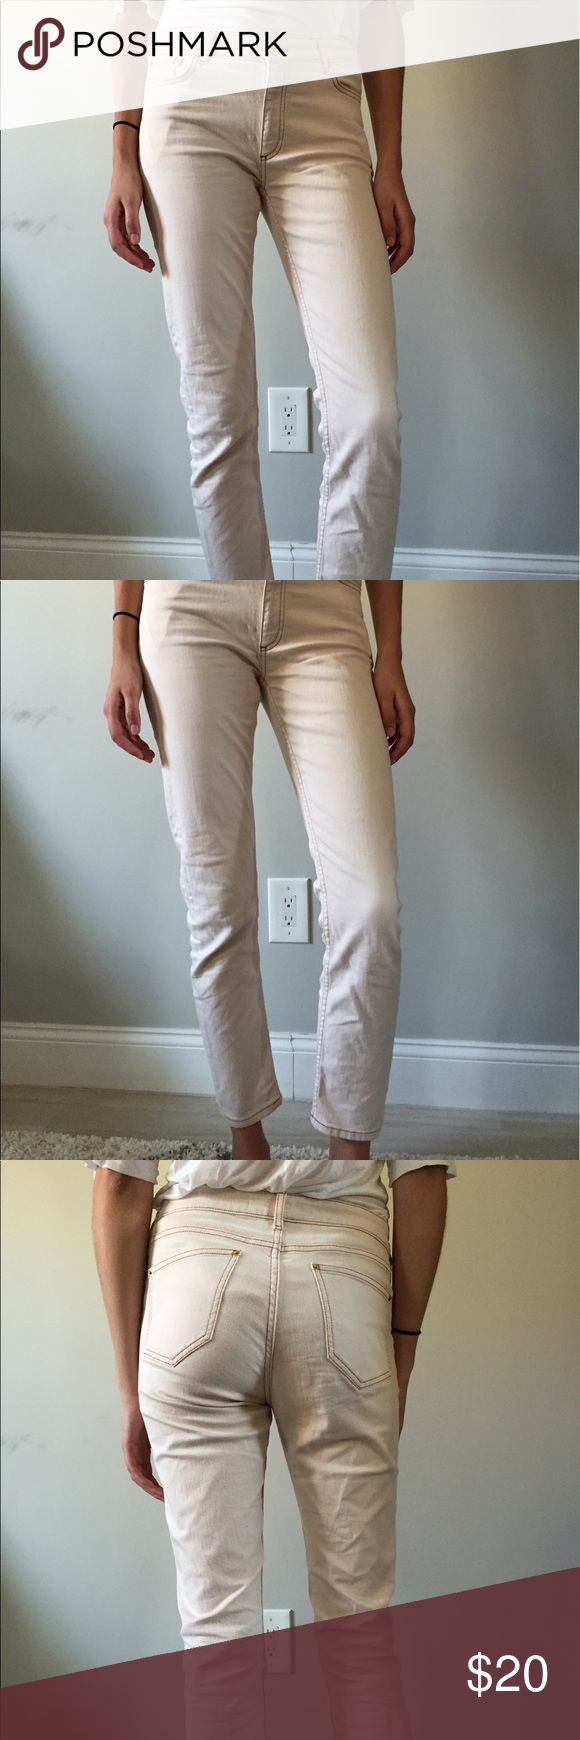 "Blush colored jeans - And Other Stories Barely worn jeans from And Other Stories in a beautiful blush color - peach/ faint pink, nearly beige. They were just a little too big on me :( They need a new home! Size 29, relaxed straight fit. 30"" inseam (cropped on me because I'm 5'10""). Accepting offers! And other stories Jeans Ankle & Cropped"